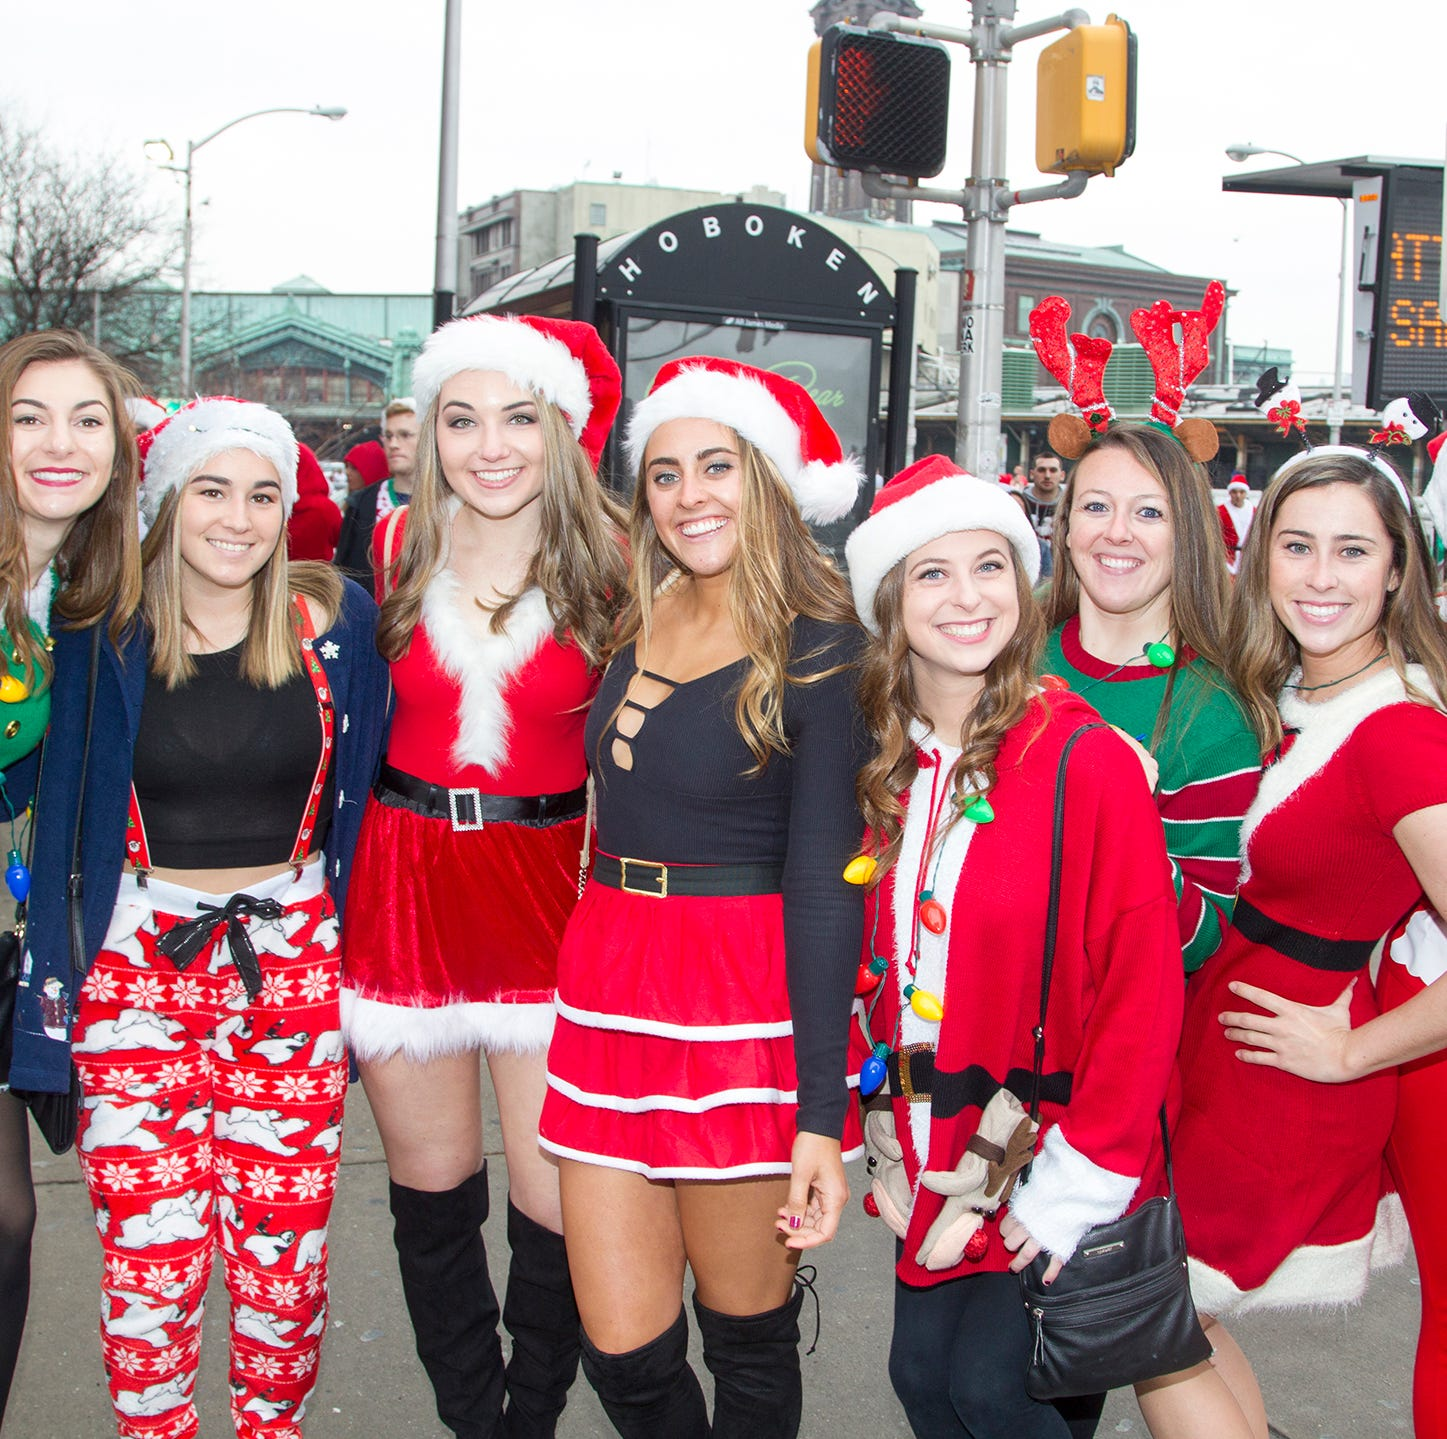 Hoboken police chief is live tweeting SantaCon revelry